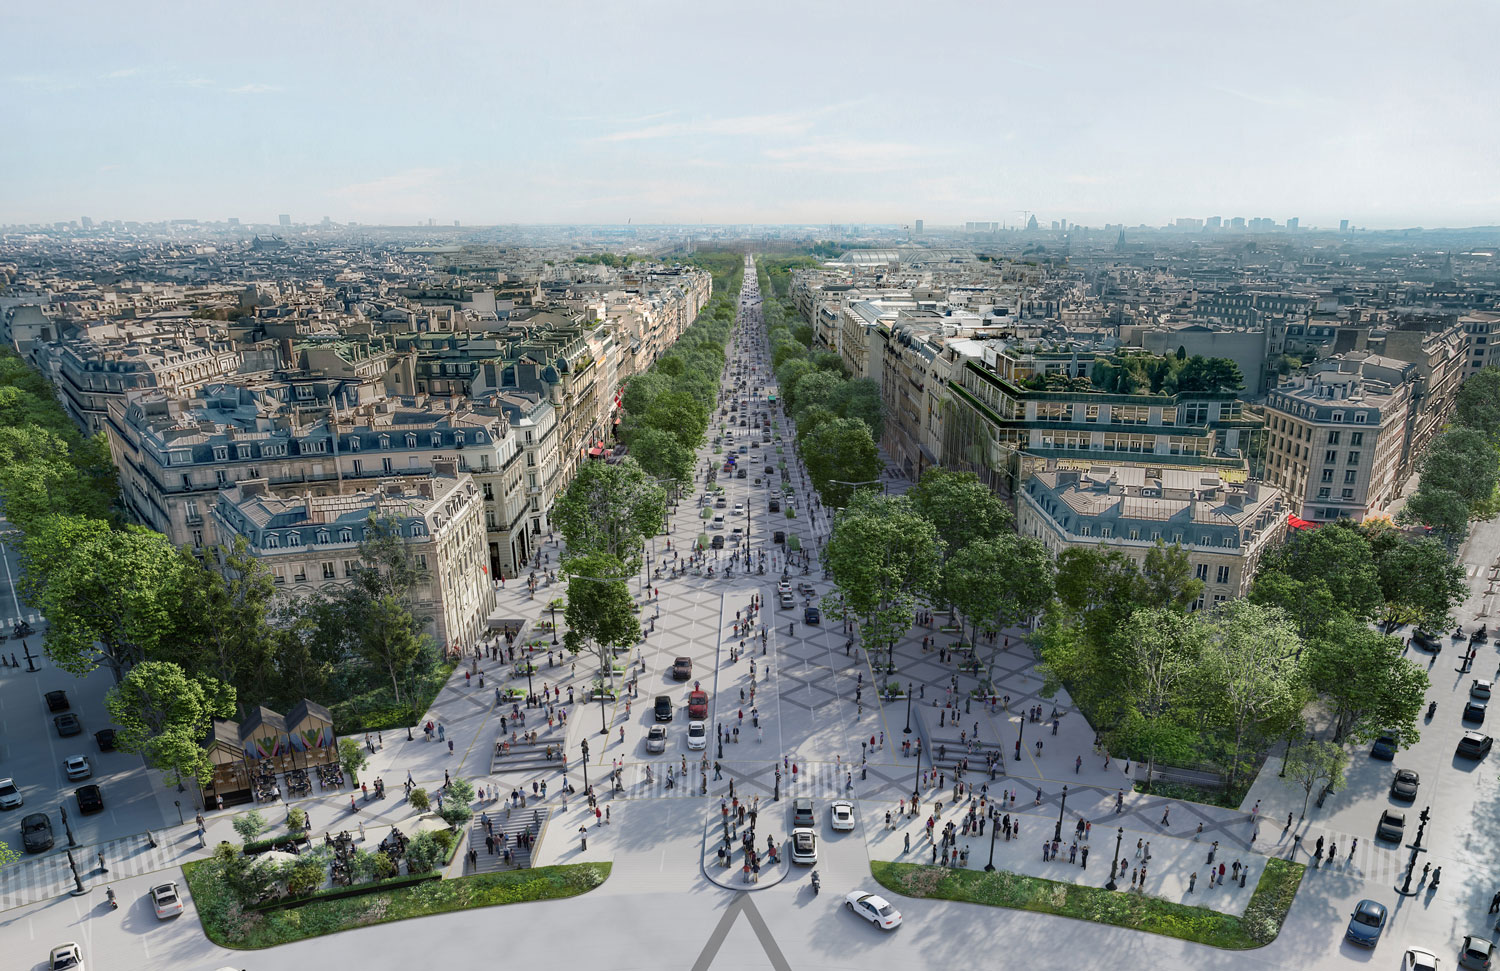 The Champs-Élysées is set to become a mile-long garden